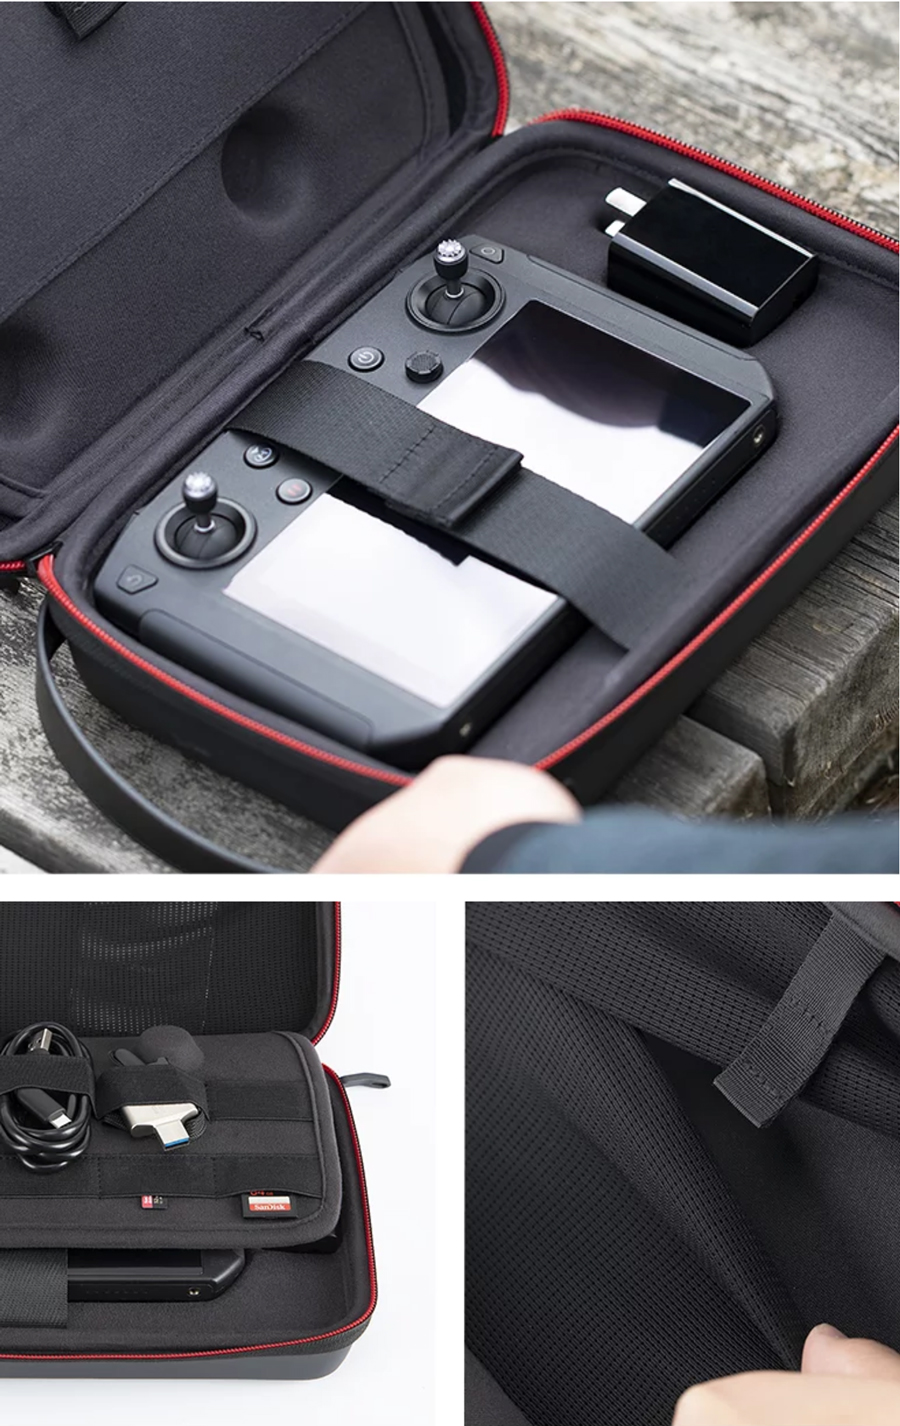 The case has a clear storage space planning with customizable space <br> which can hold the Mavic 2 Smart Controller, a charger, USB cables, <br> SD cards, and other peripheral accessories.